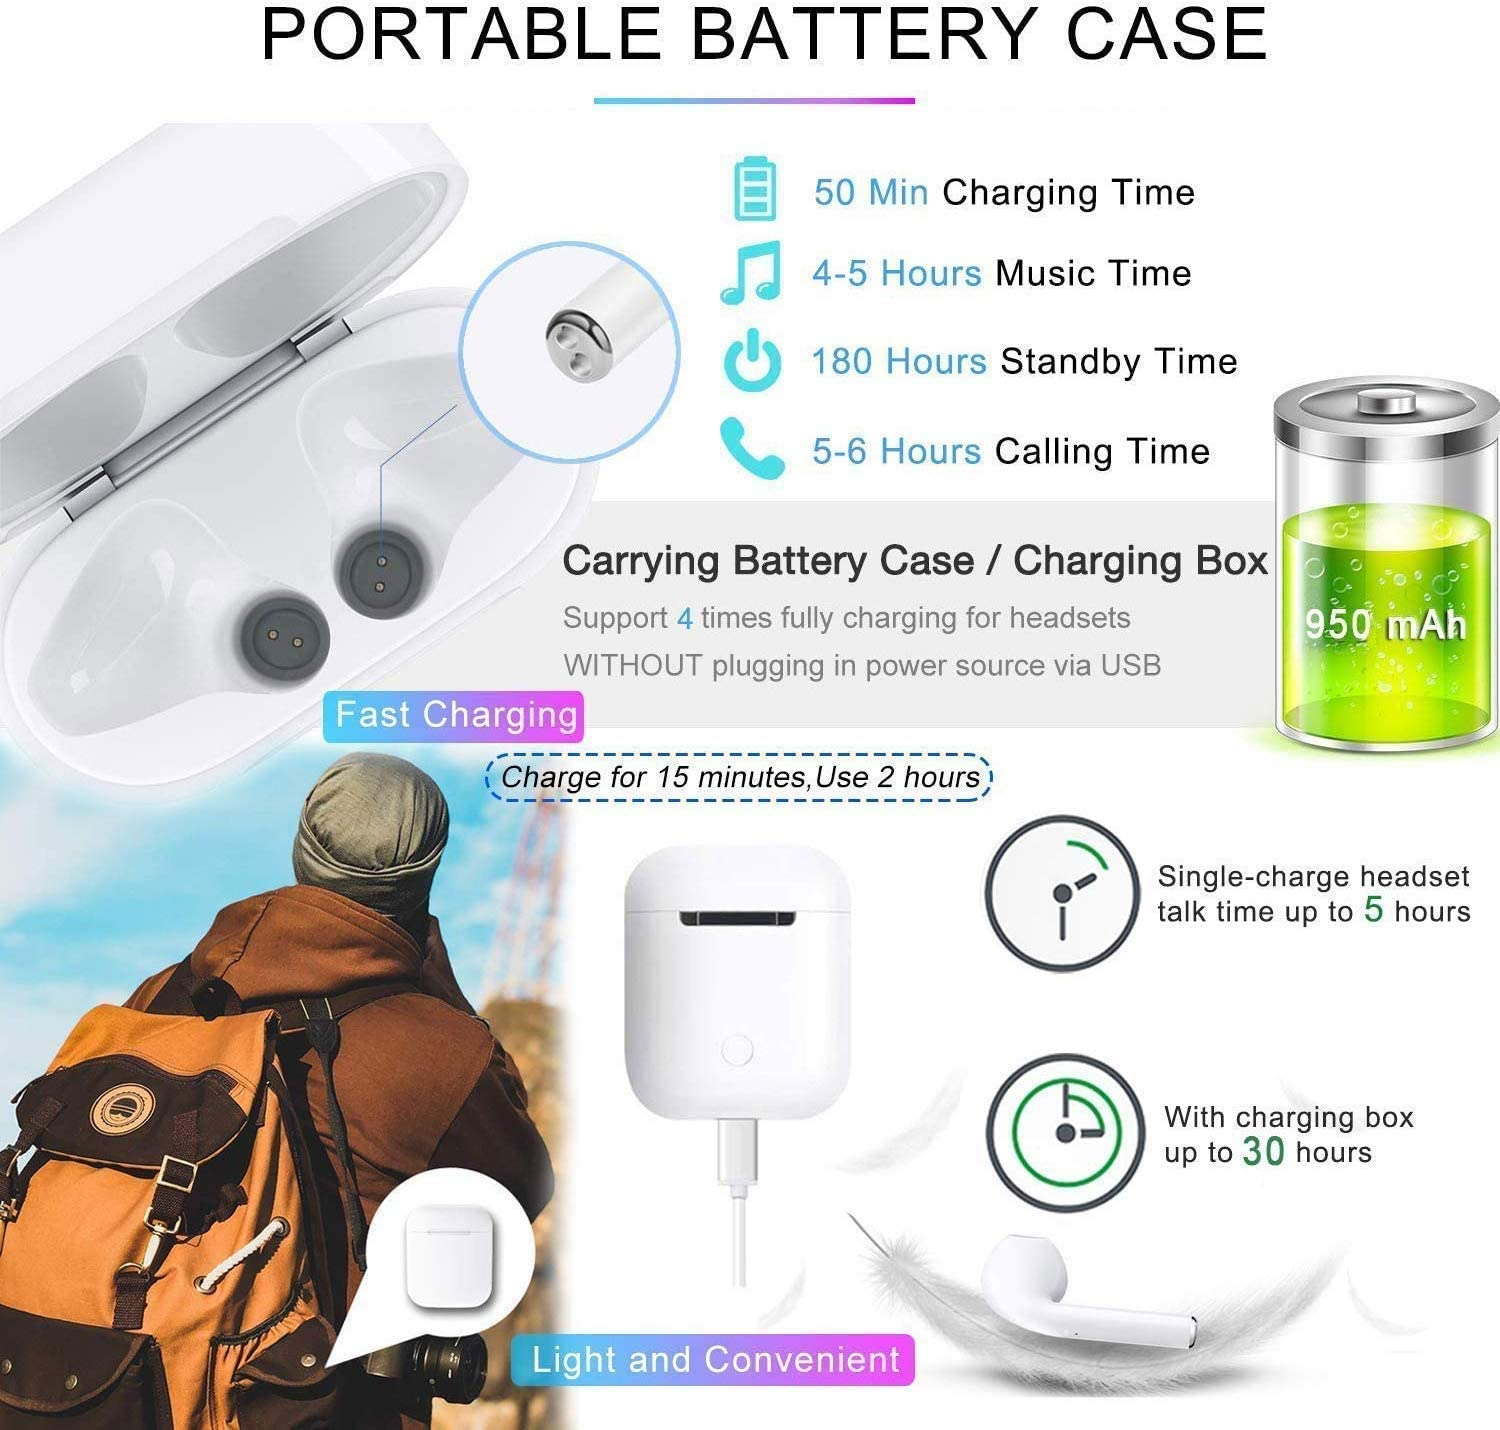 Bluetooth 5.0 Wireless Earbuds Bluetooth Earbuds Pop-ups Auto Pairing with Portable Charging Case Compatible with Apple Airpods Android//iPhone Noise Canceling IPX7 Waterproof Sports Headset